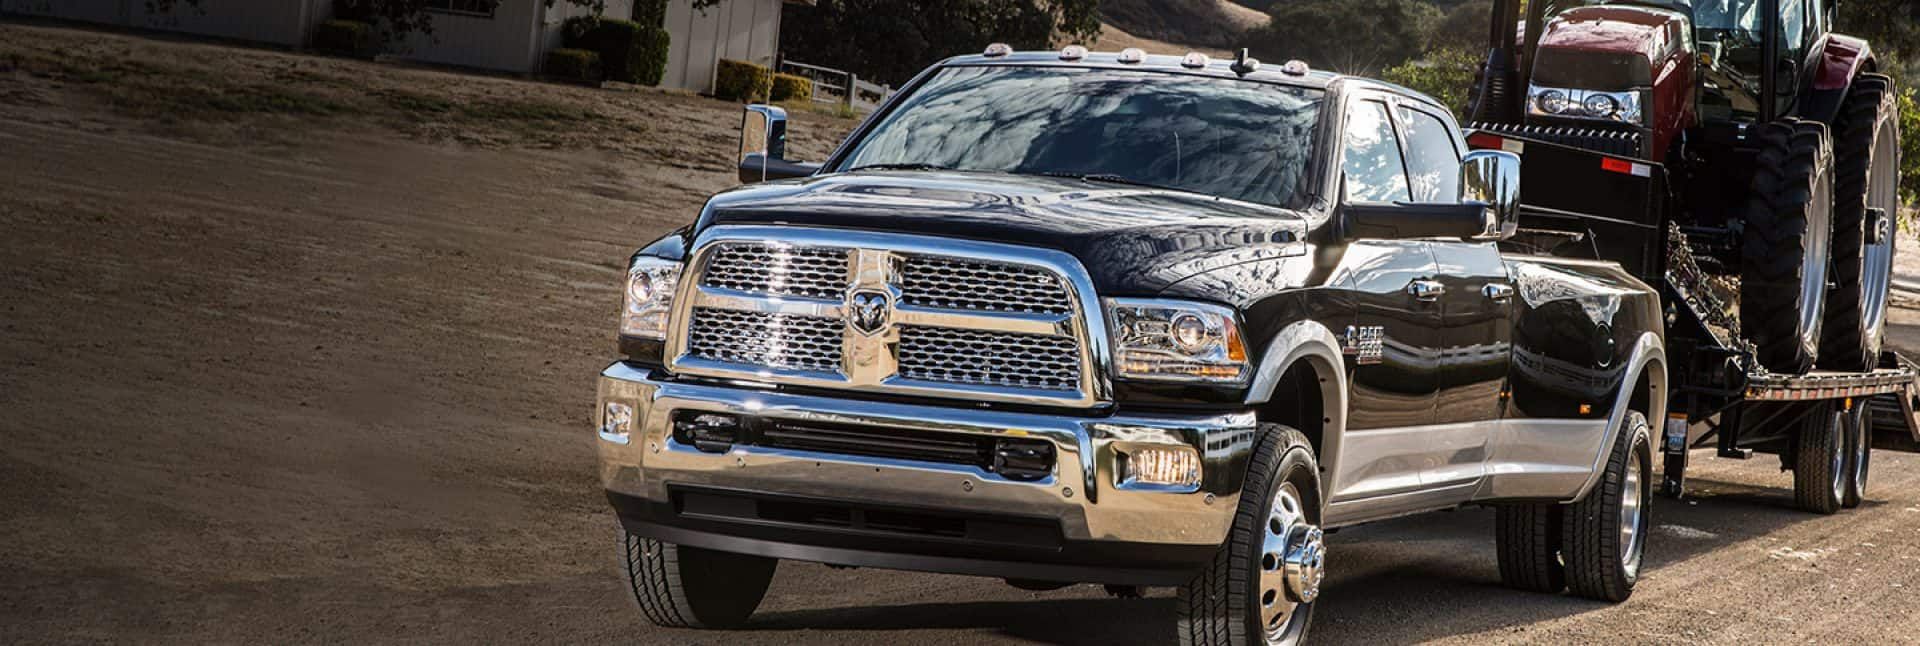 Ram 3500 Towing Capacity >> 2018 Ram Trucks 3500 Efficiency And Capability Features